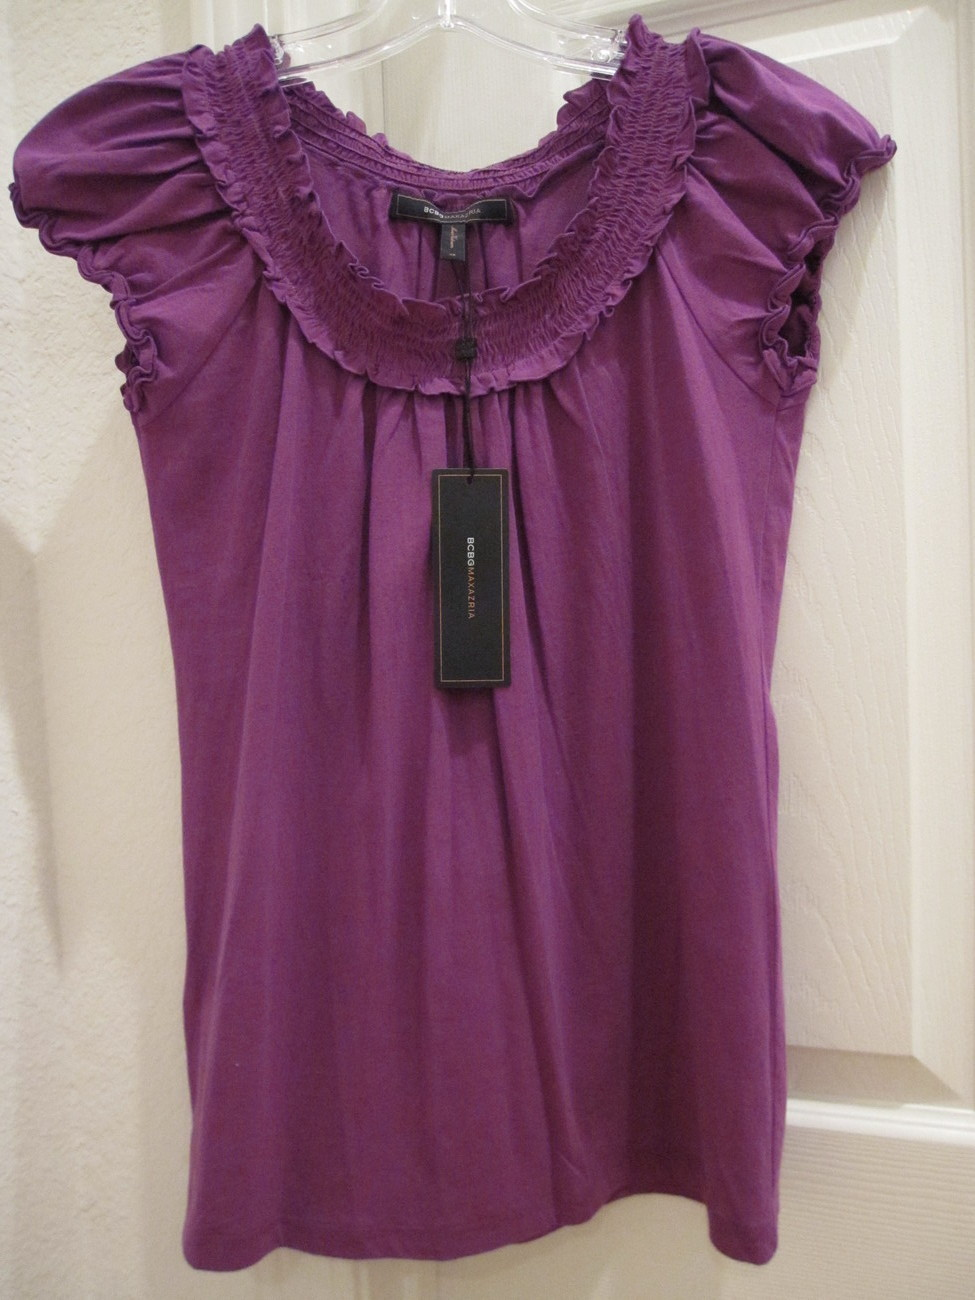 NWT BCBG Purple Top - size XS Other